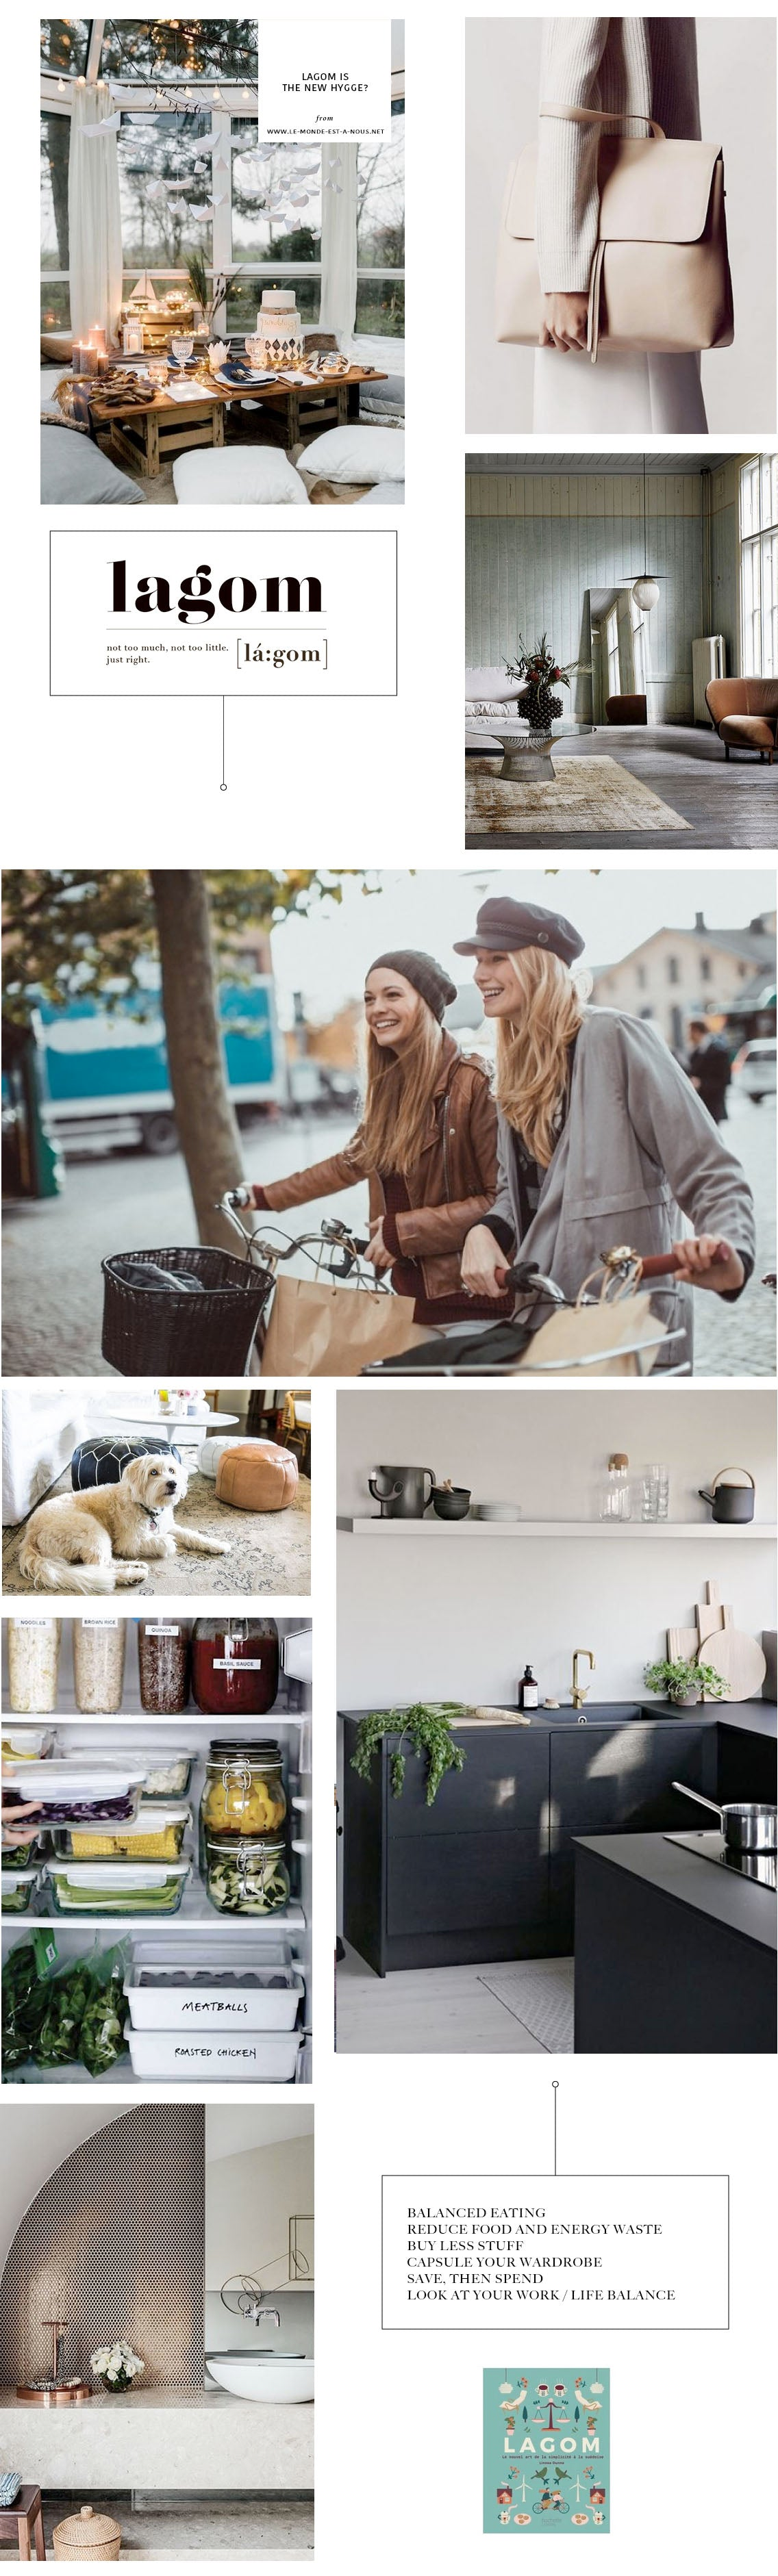 Lagom Vivre Mieux Avec Moins lagom is the new hygge? here's what you need to know for a